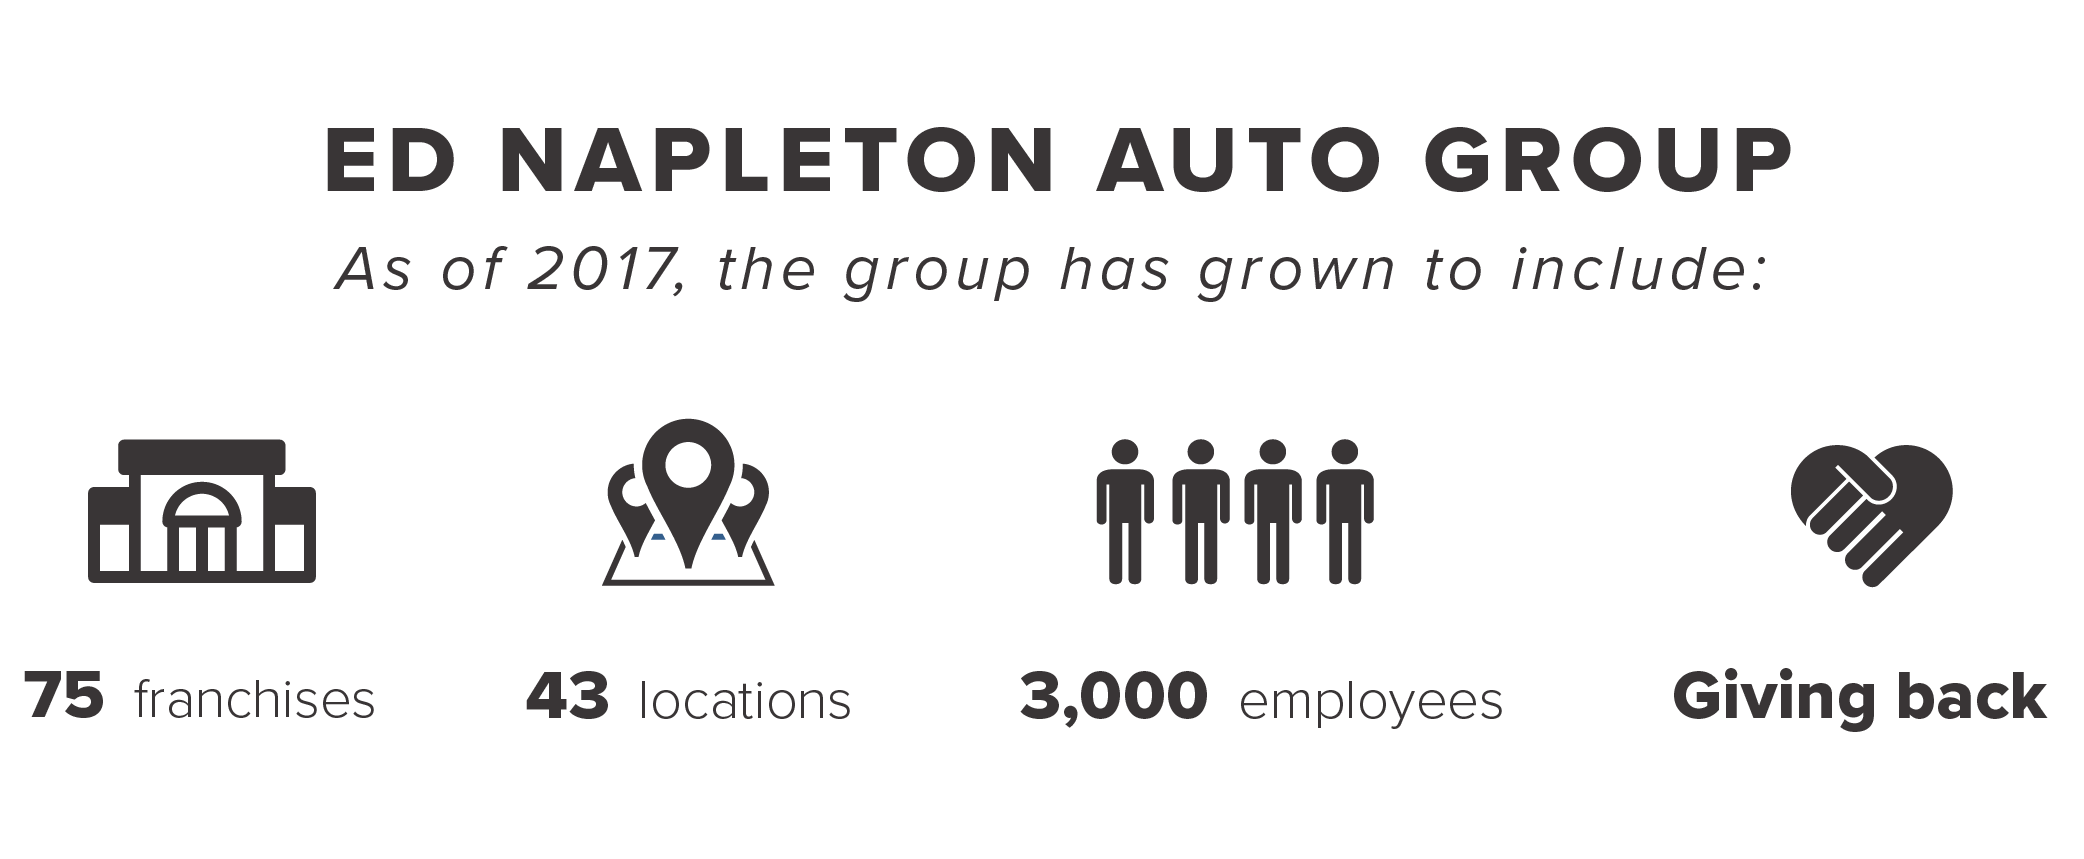 Ed Napleton Automotive Group Corporate Stats